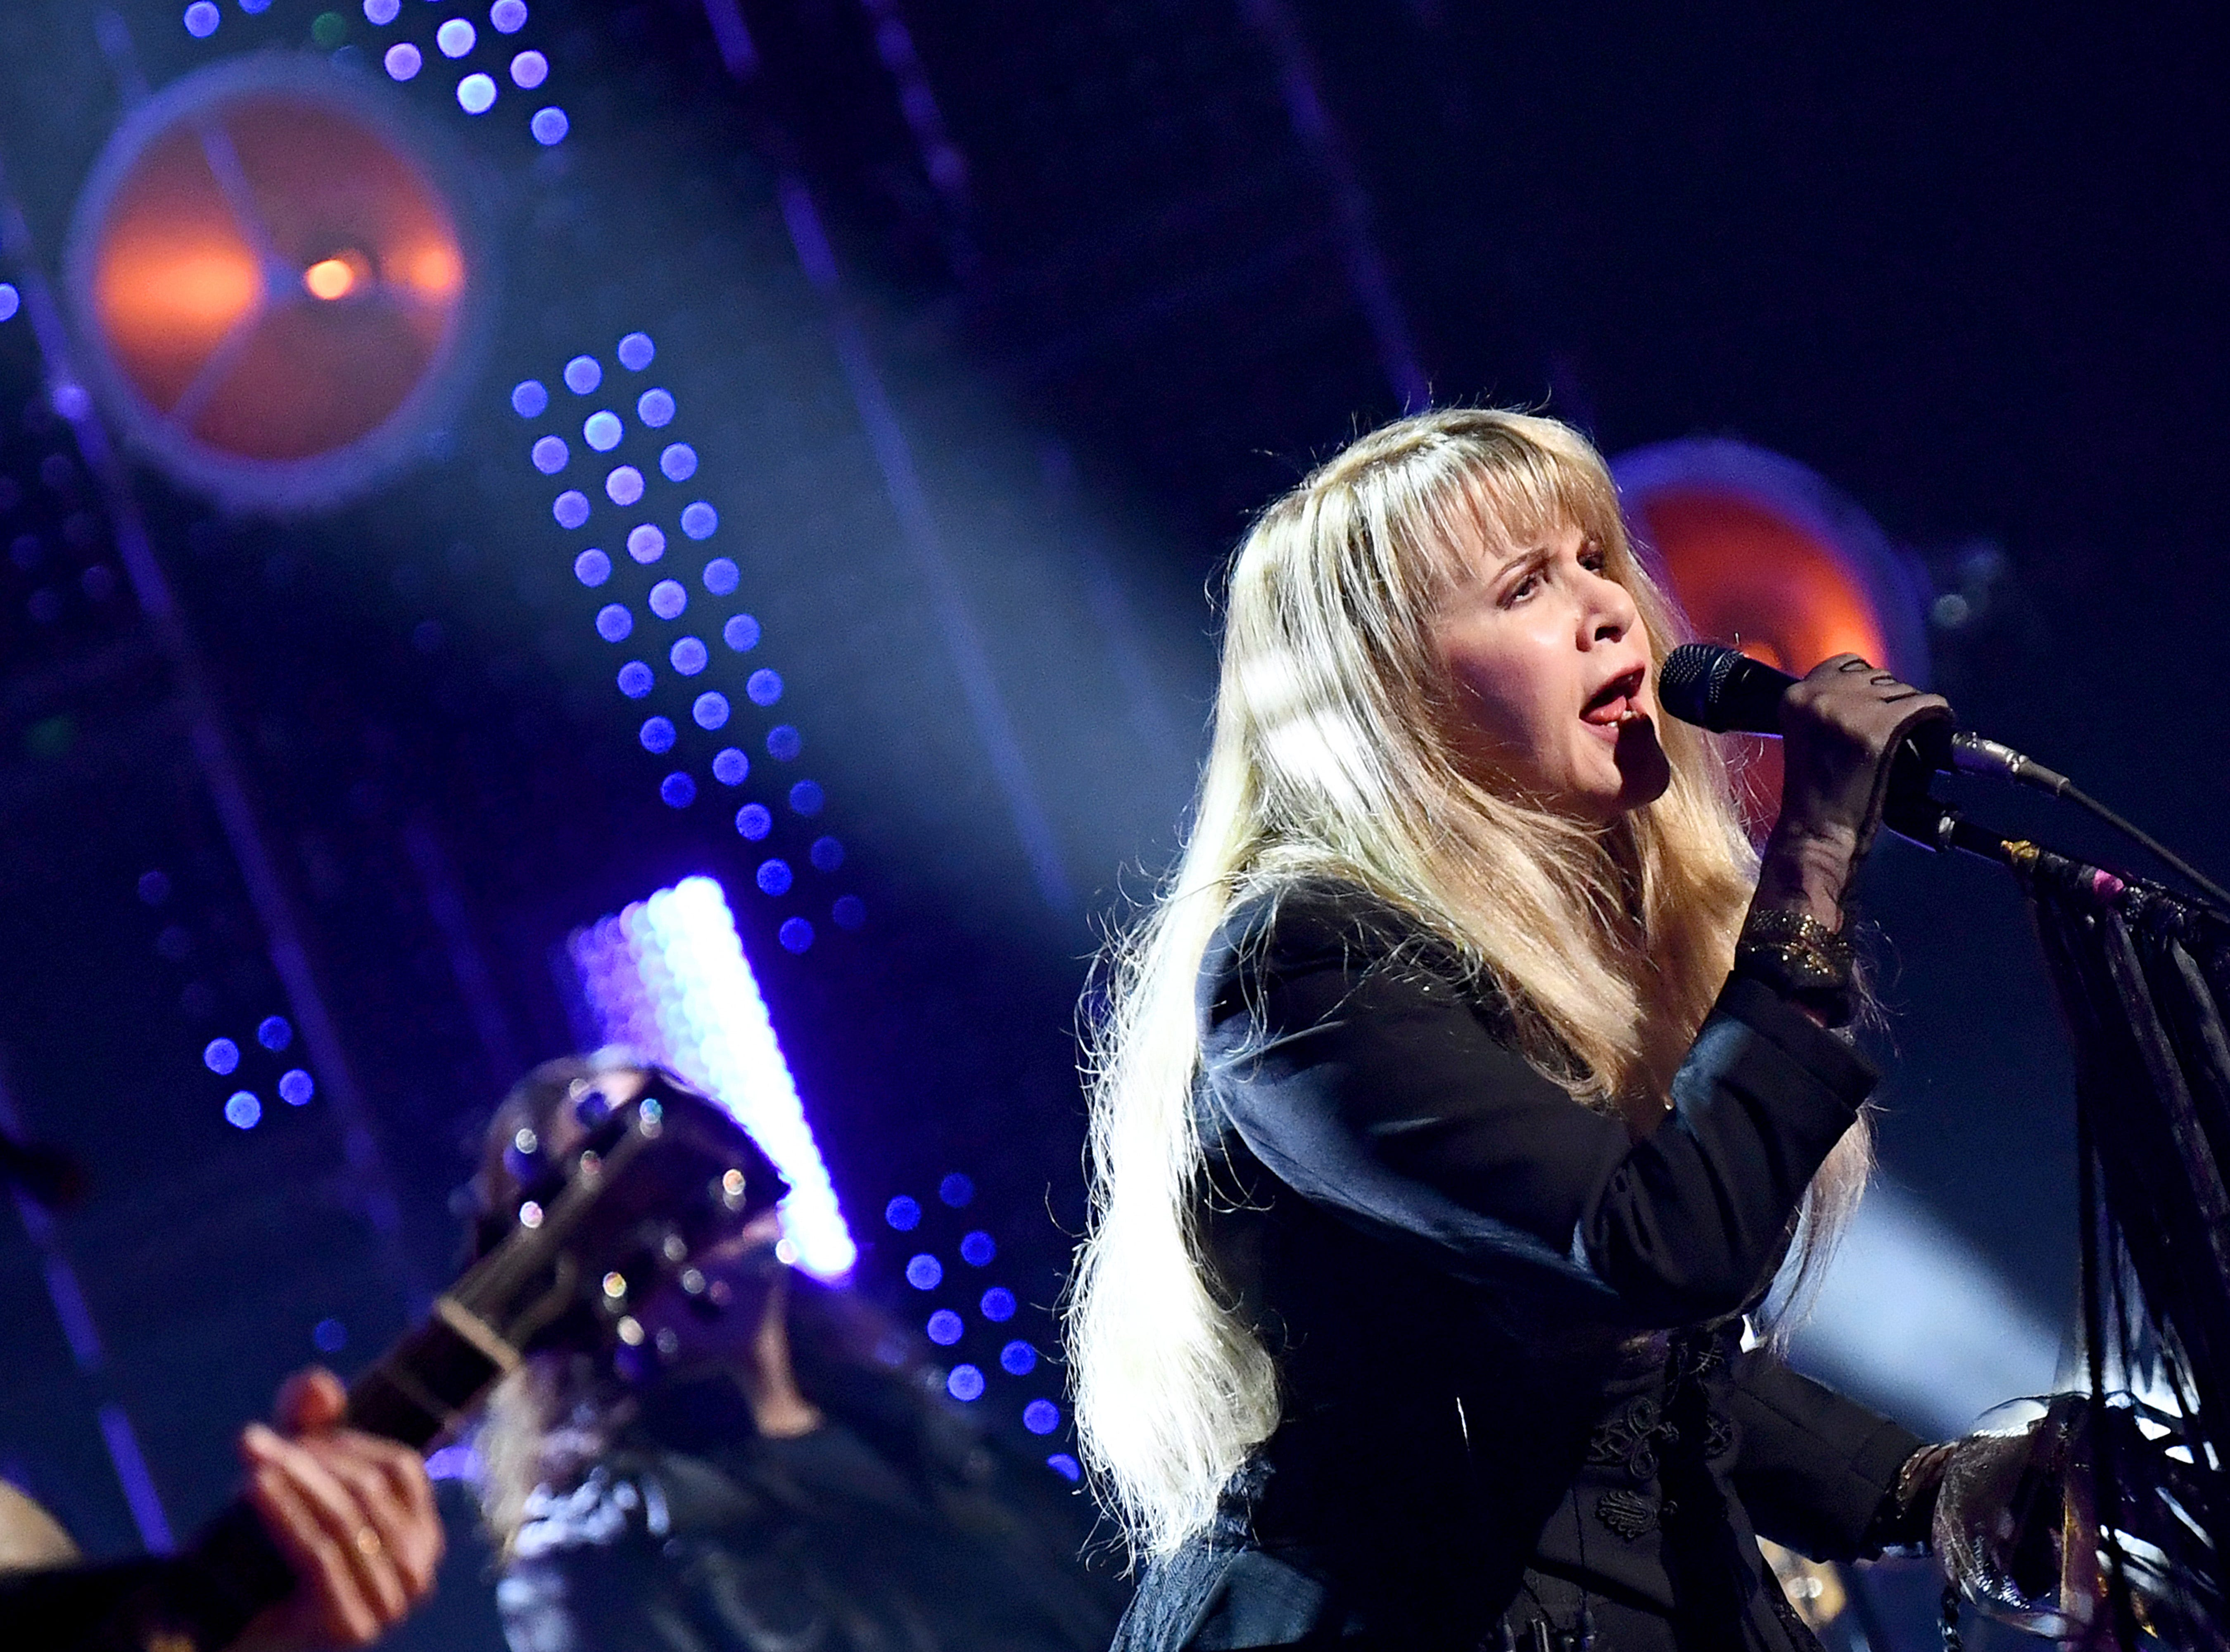 NEW YORK, NEW YORK - MARCH 29: Inductee Stevie Nicks performs at the  2019 Rock & Roll Hall Of Fame Induction Ceremony - Show at Barclays Center on March 29, 2019 in New York City. (Photo by Dimitrios Kambouris/Getty Images For The Rock and Roll Hall of Fame) ORG XMIT: 775320663 ORIG FILE ID: 1139174319